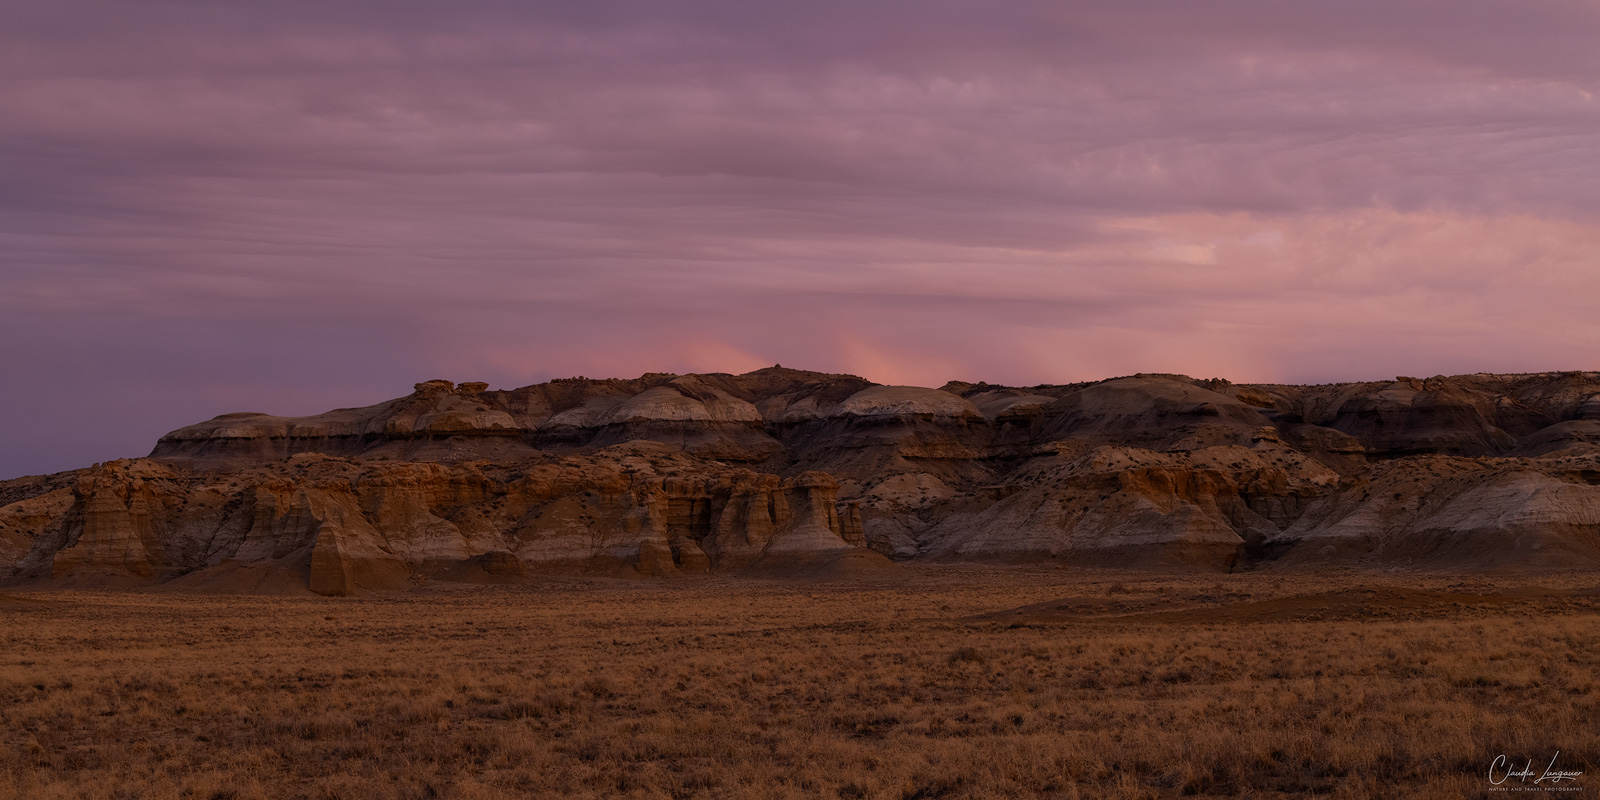 View of Bisti Badlands in New Mexico at sunset.